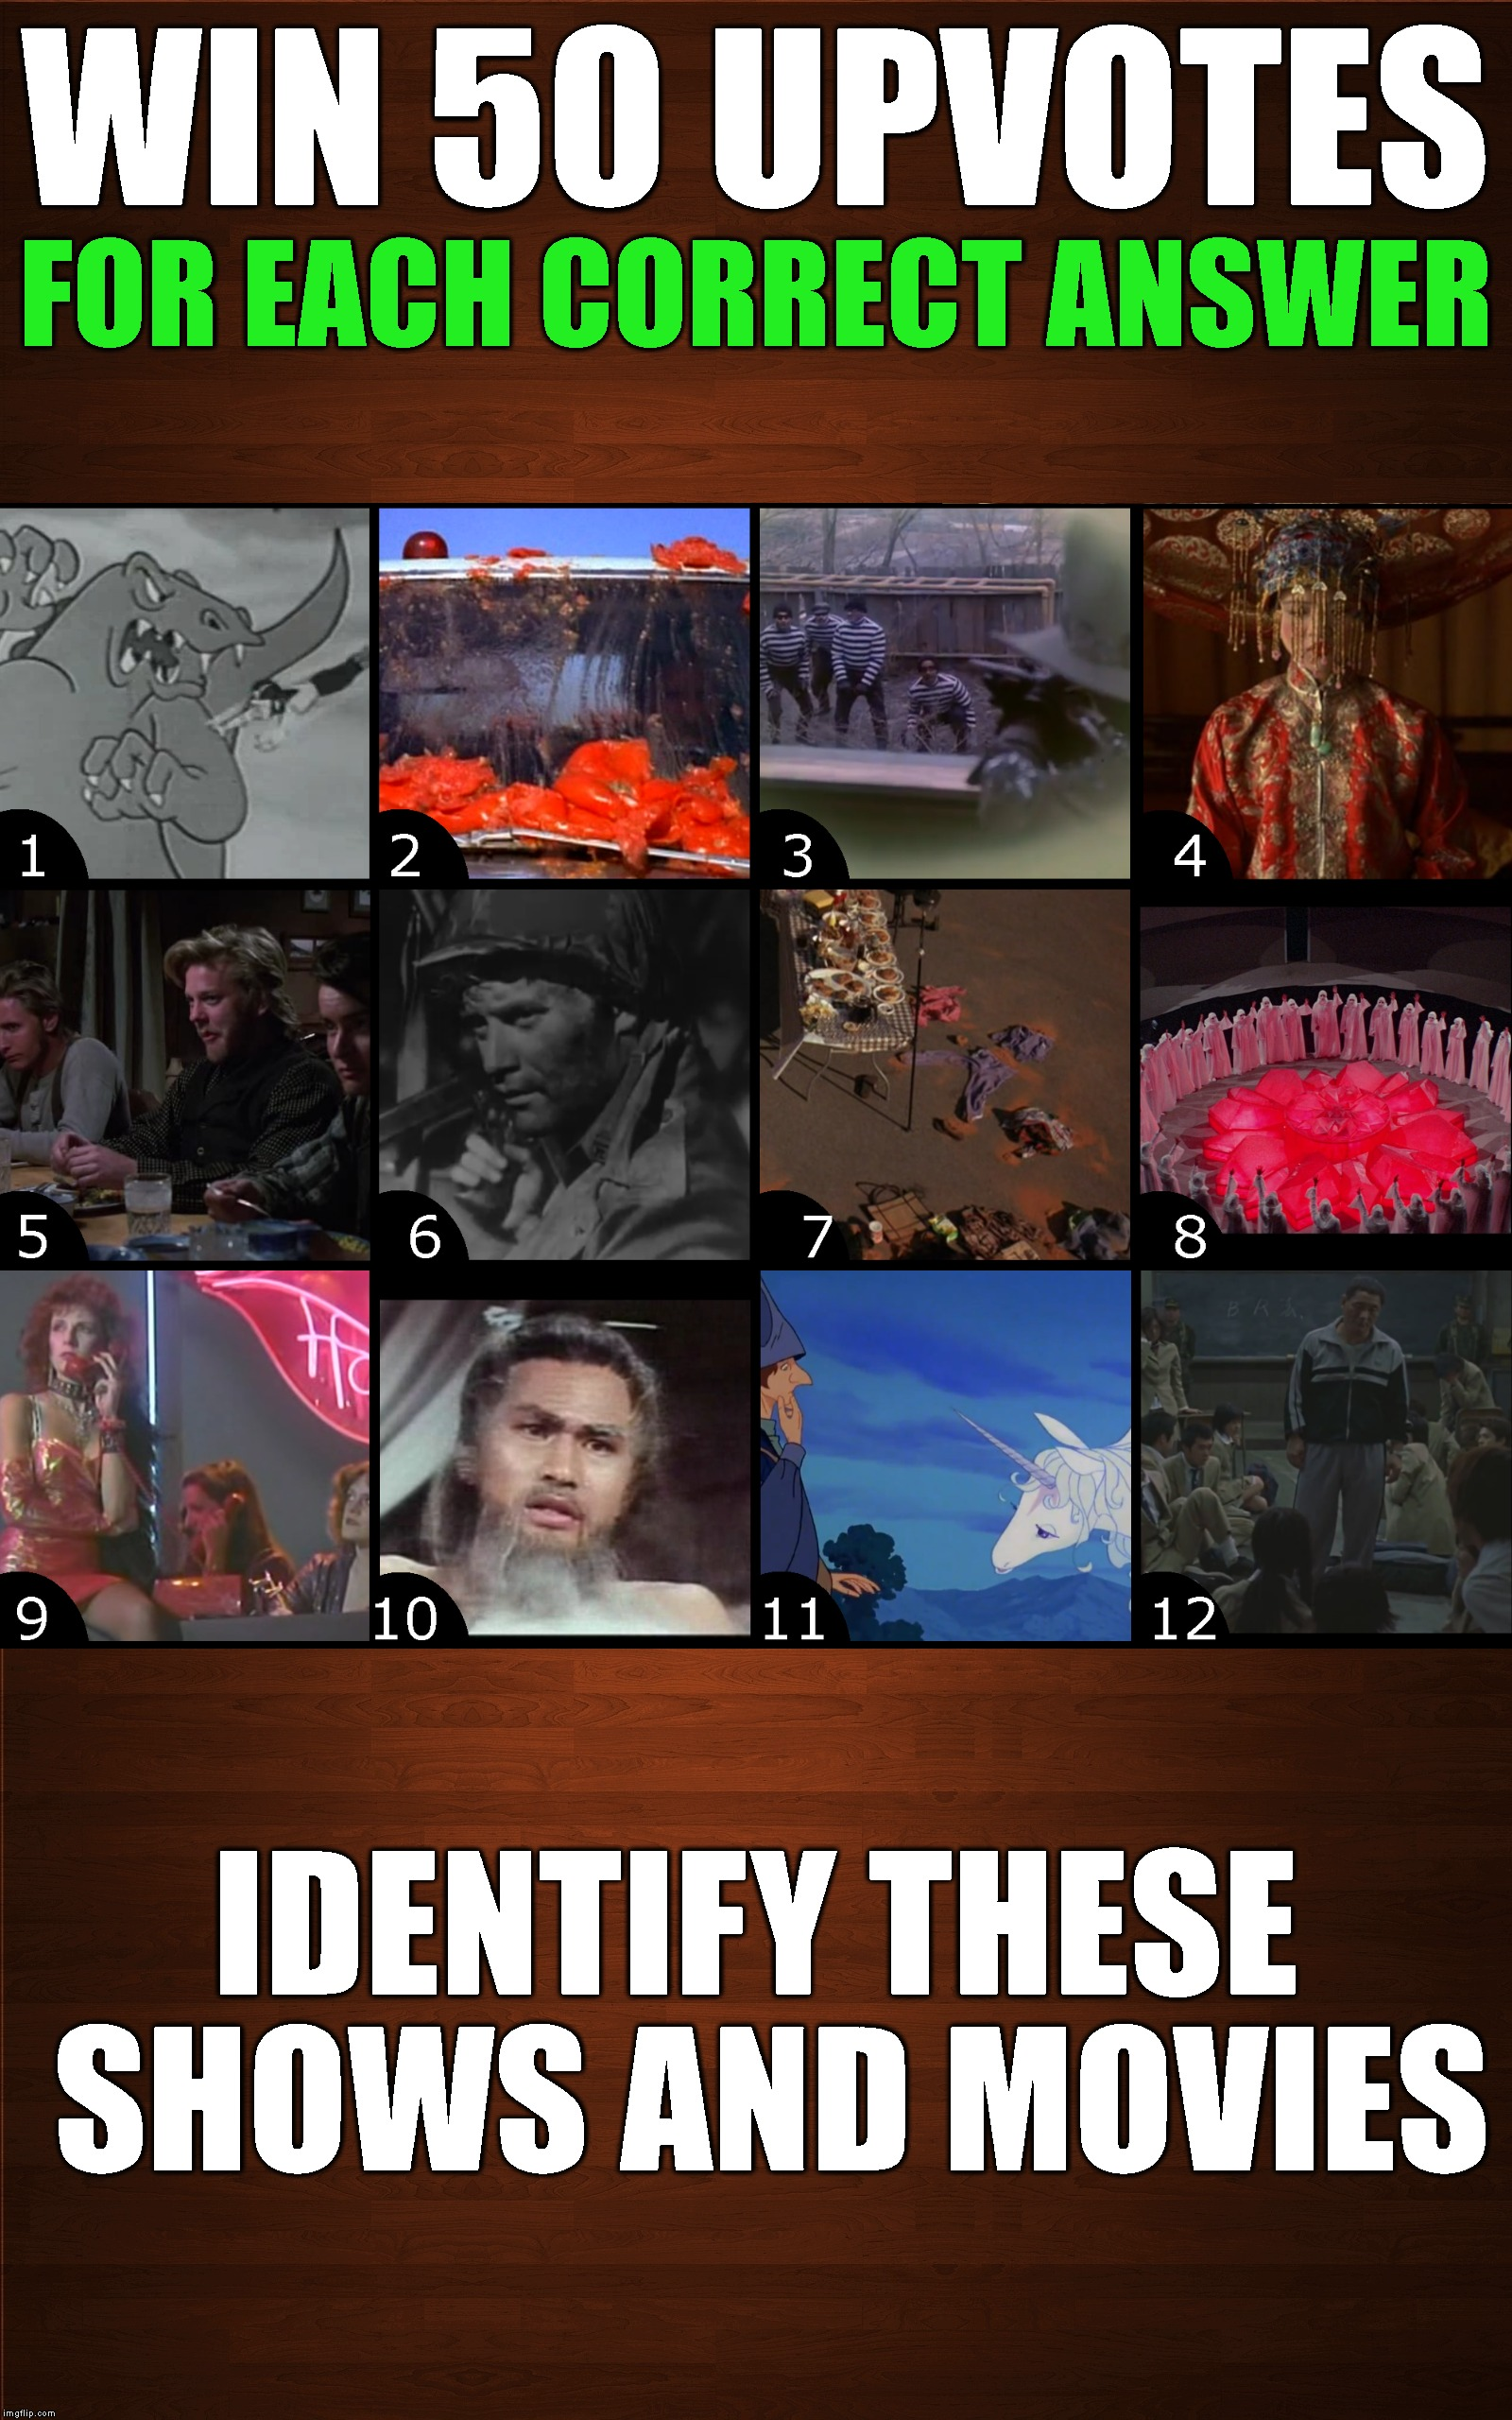 50 FREE Upvotes * 12 Chances To Win * Join The Fun! | WIN 50 UPVOTES IDENTIFY THESE SHOWS AND MOVIES FOR EACH CORRECT ANSWER | image tagged in givaway,contest,upvotes,imgflip,imgflip users,movies | made w/ Imgflip meme maker